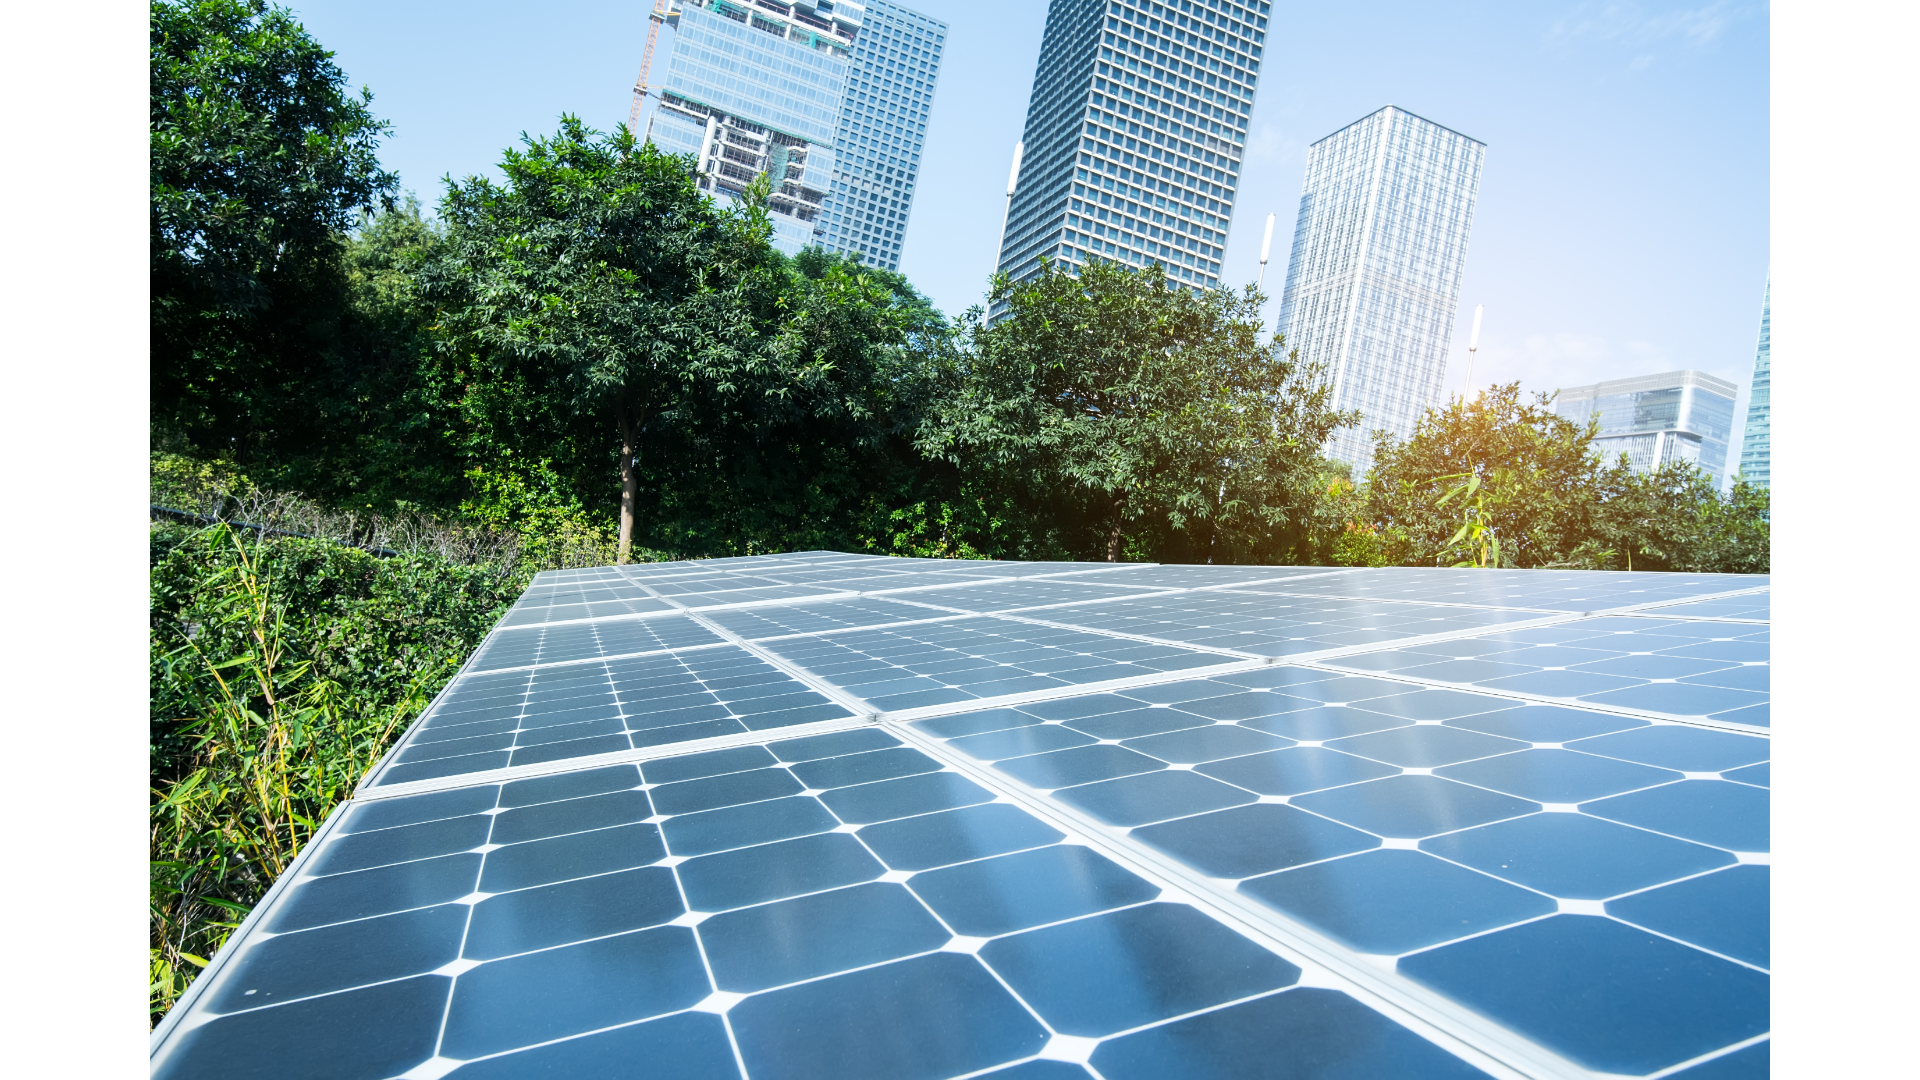 Solar energy solutions for decarbonizing ULT DHC